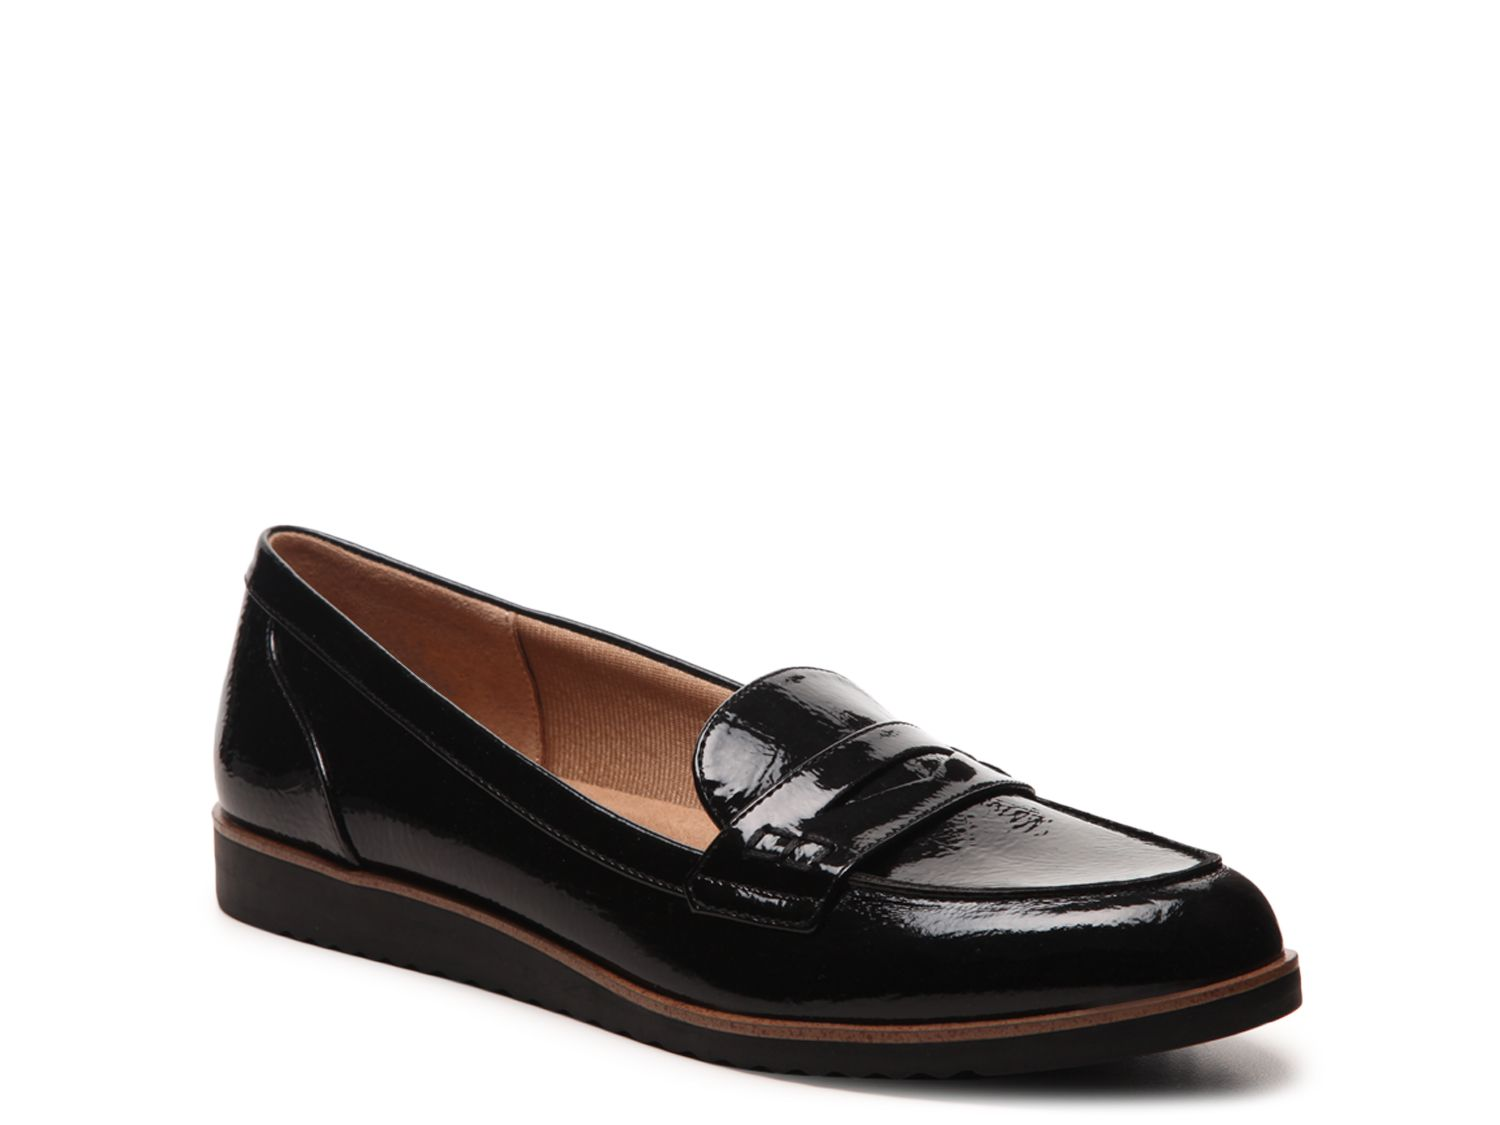 Abella Zoey Loafer In 2021 Loafers Womens Black Flats Loafers For Women [ 1125 x 1500 Pixel ]